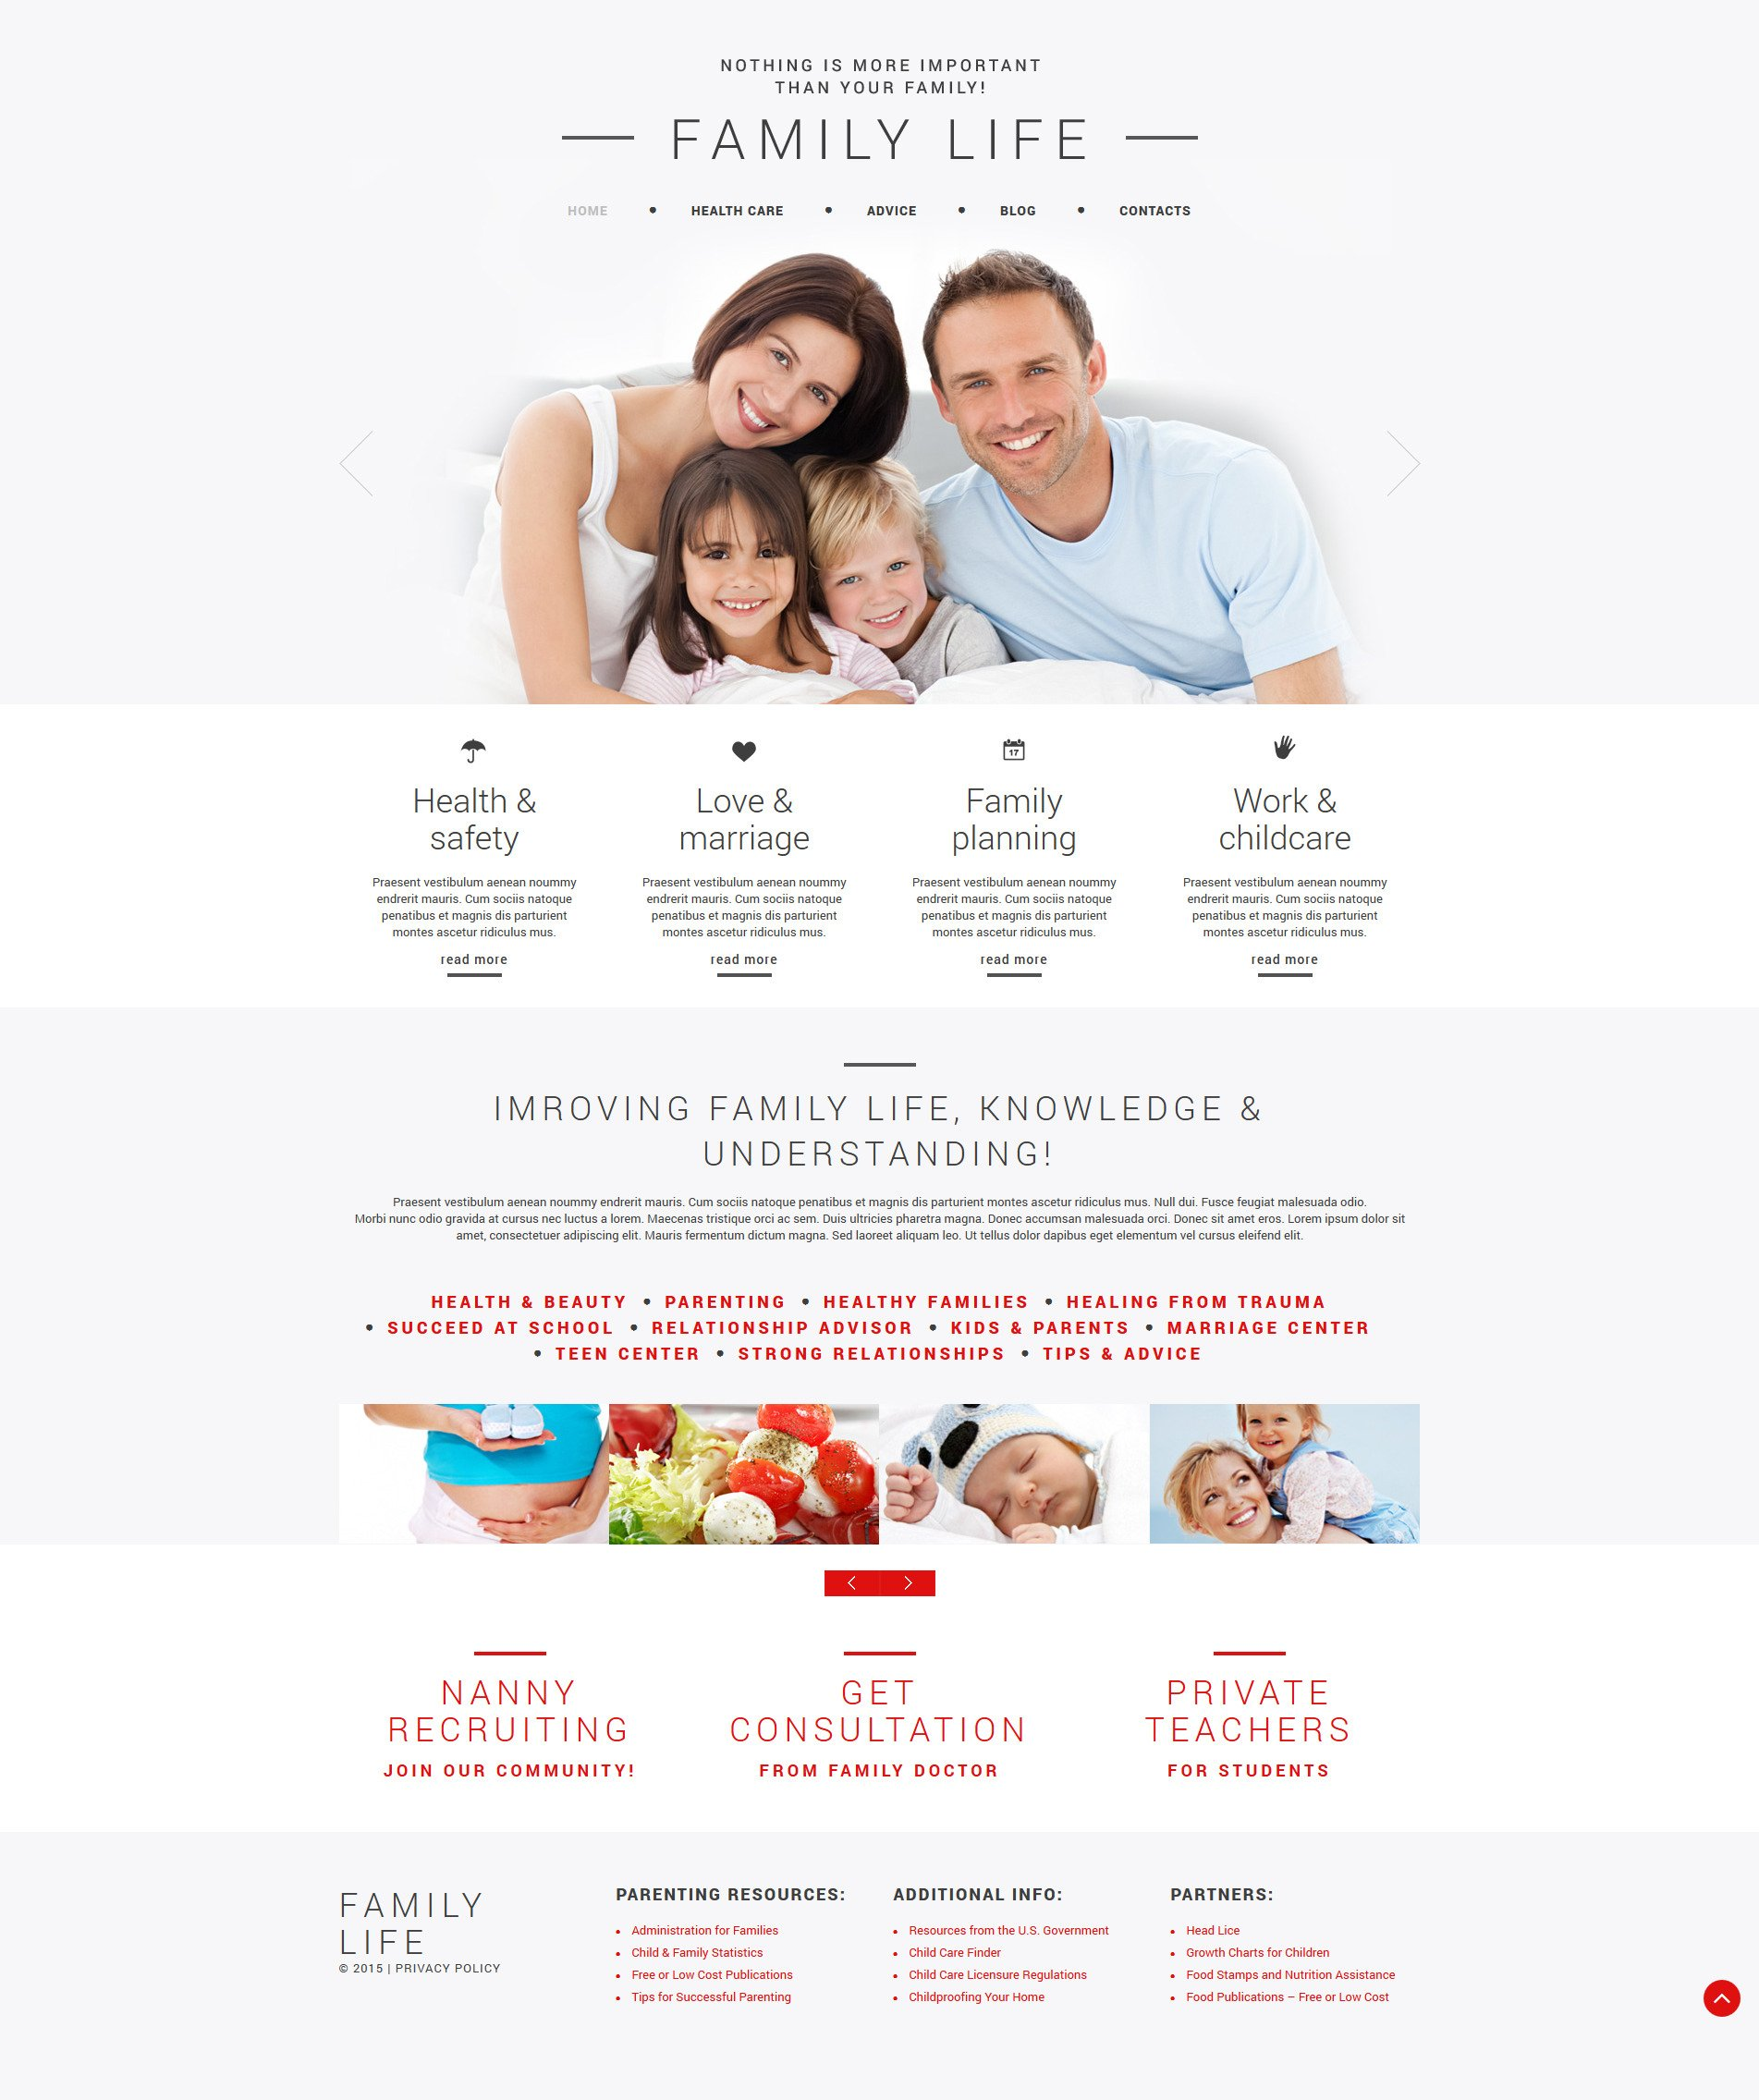 The Family Life Portal Joomla Design 53033, one of the best Joomla templates of its kind (family, most popular), also known as family life portal Joomla template, site Joomla template, harmony Joomla template, hearth Joomla template, home Joomla template, children Joomla template, baby Joomla template, child Joomla template, mother Joomla template, father Joomla template, grandparents Joomla template, relatives Joomla template, relationship Joomla template, close care Joomla template, happiness Joomla template, education Joomla template, youth Joomla template, health Joomla template, kids Joomla template, fun Joomla template, advices Joomla template, events Joomla template, entertainment Joomla template, information Joomla template, support Joomla template, directory Joomla template, psychology Joomla template, services Joomla template, culture Joomla template, tips and related with family life portal, site, harmony, hearth, home, children, baby, child, mother, father, grandparents, relatives, relationship, close care, happiness, education, youth, health, kids, fun, advices, events, entertainment, information, support, directory, psychology, services, culture, tips, etc.